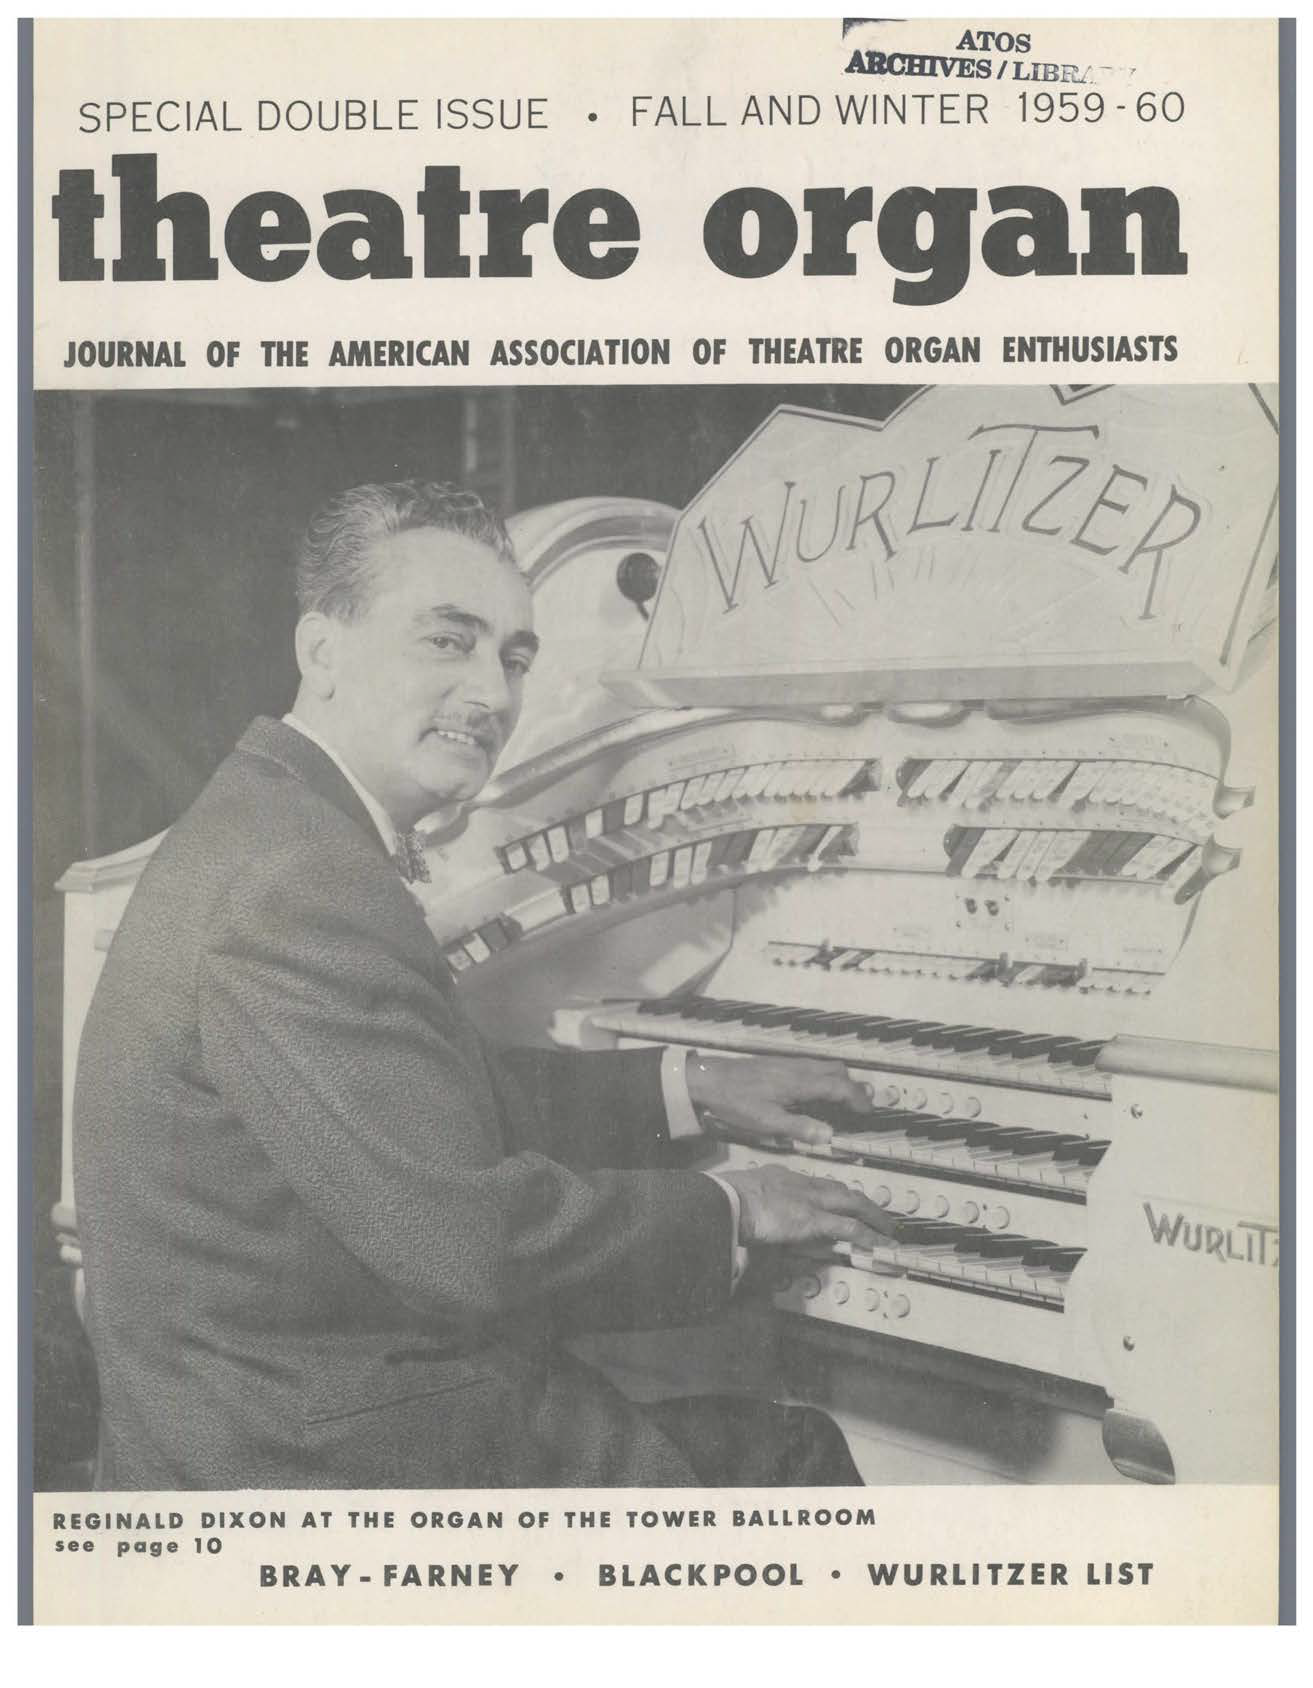 Theatre Organ, Fall and Winter 1959, Volume 1, Number 3 & 4